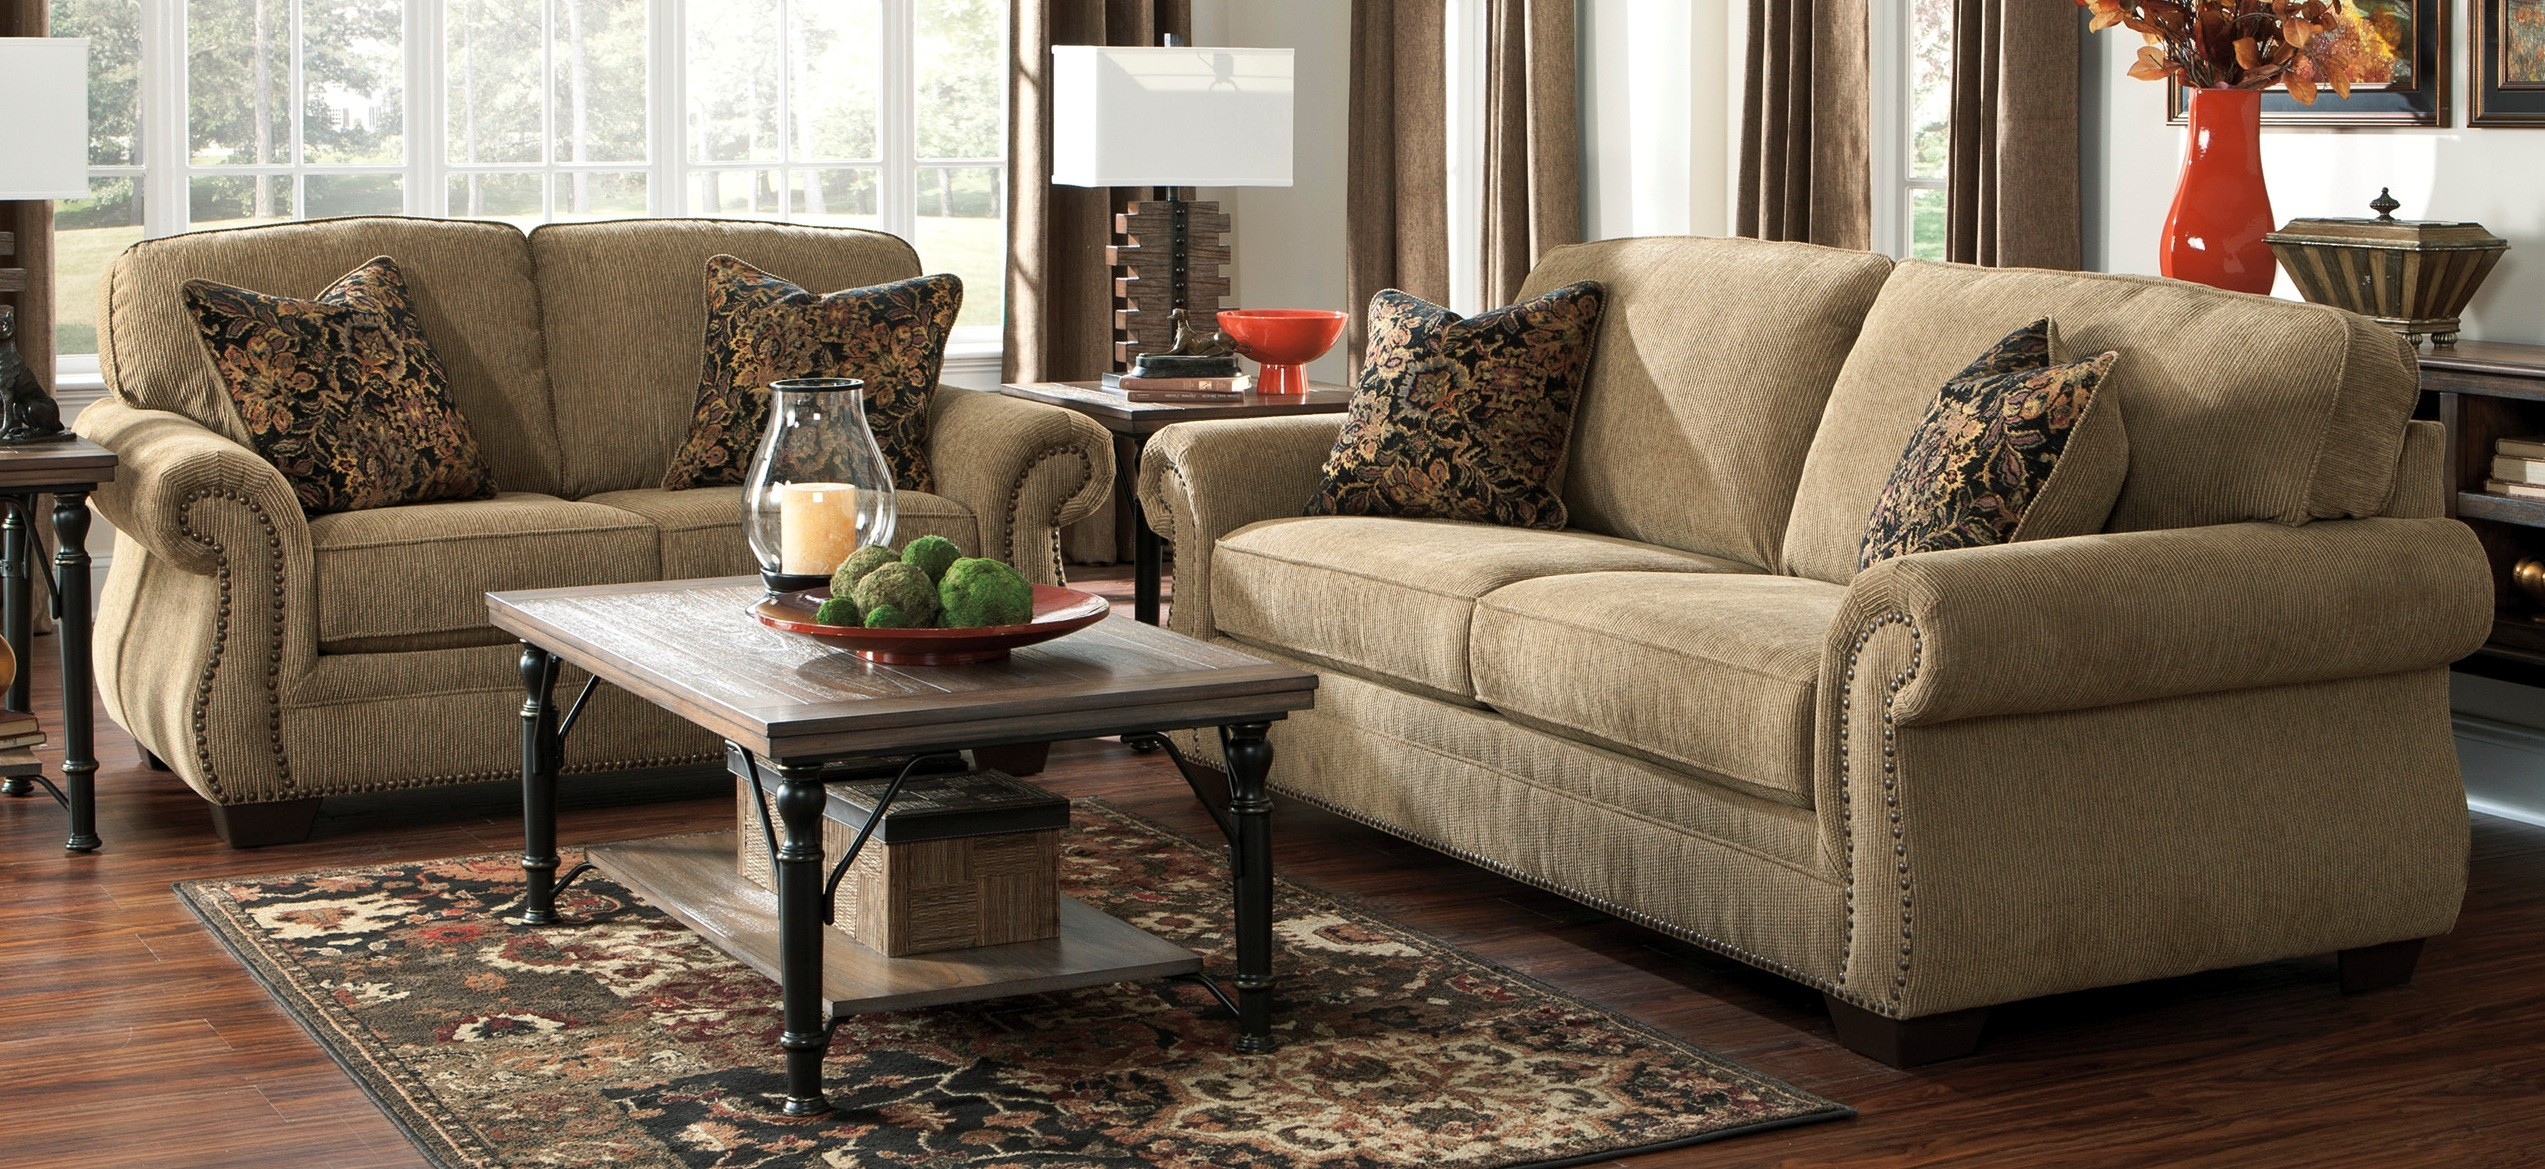 Bon Elegant Living Room Sets Ashley Furniture 45 In Sofa Room Ideas With Living  Room Sets Ashley Furniture